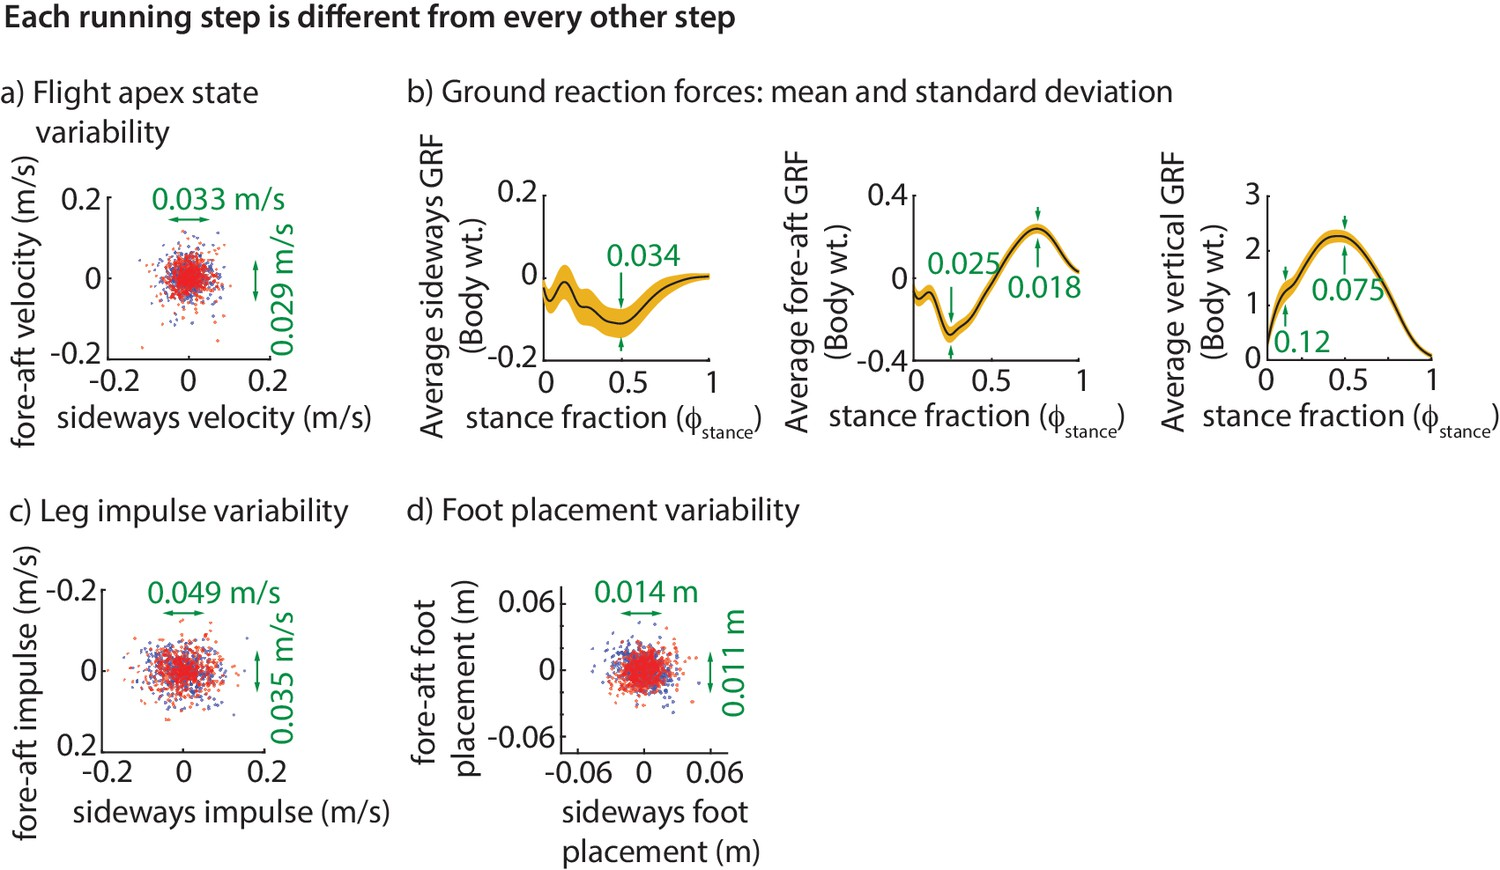 Step-to-step variations in human running reveal how humans run